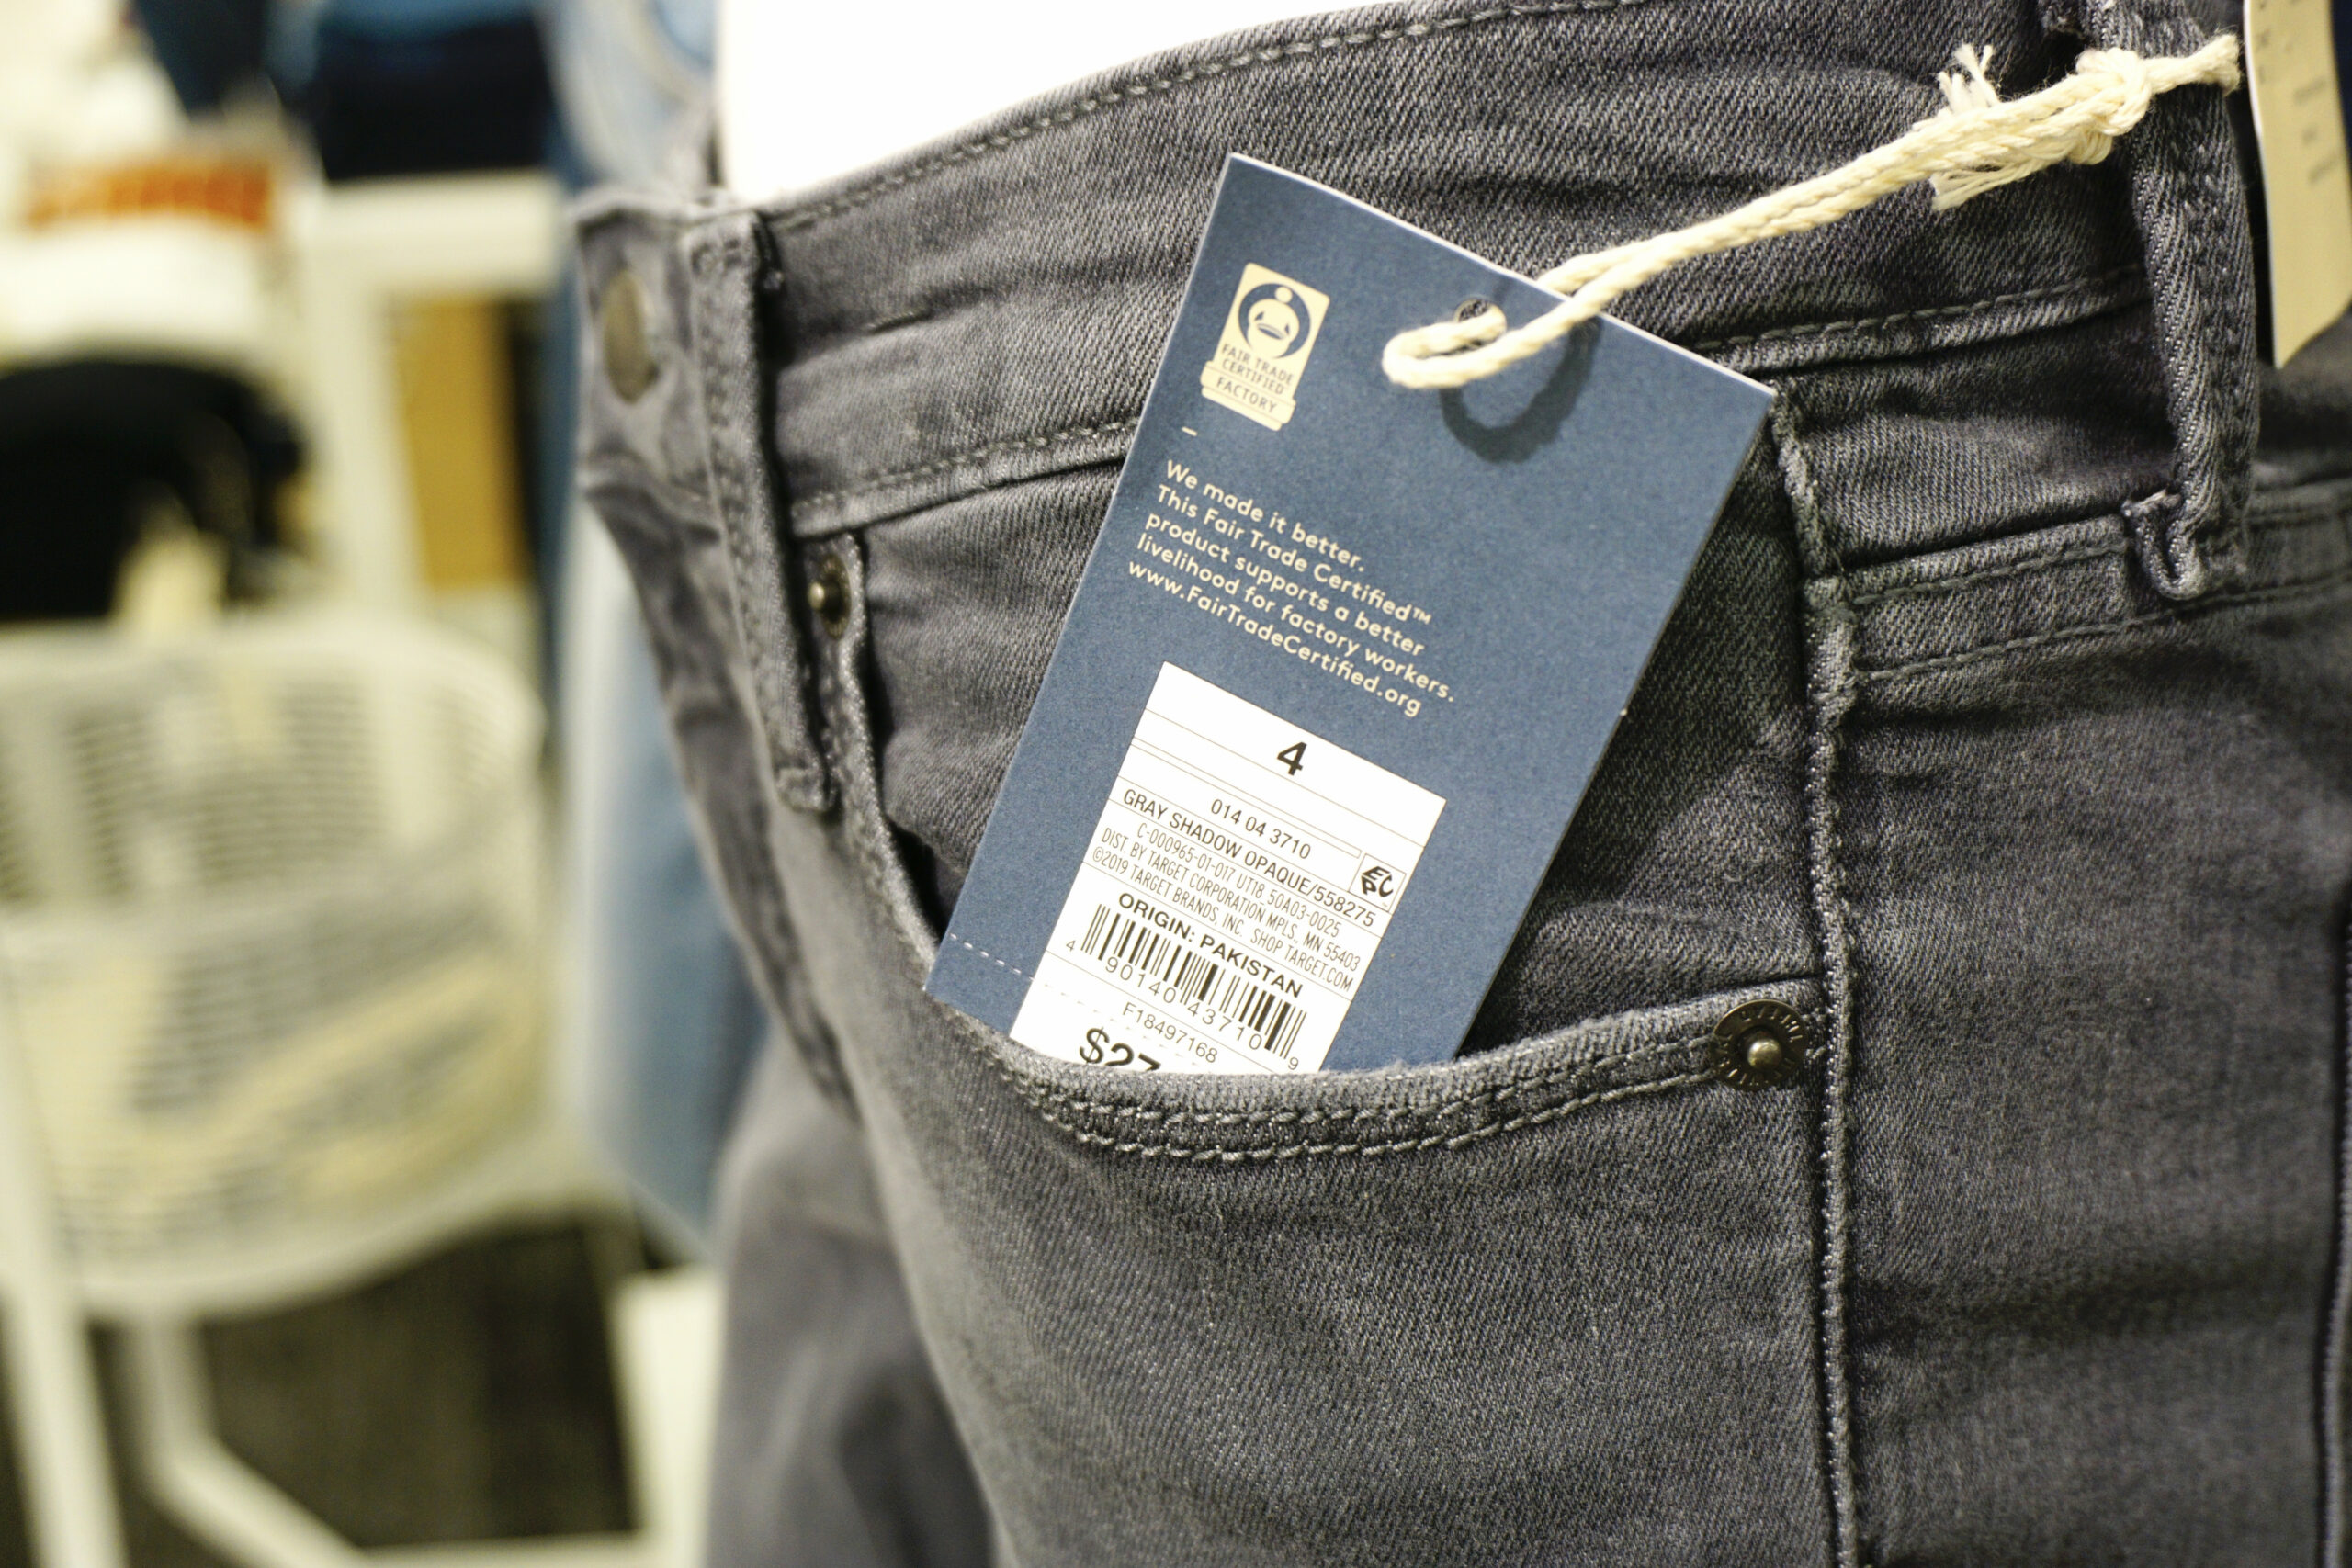 target's fair trade denim: does it live up to the hype? fairly fair trade jeans | Fair Trade Jeans